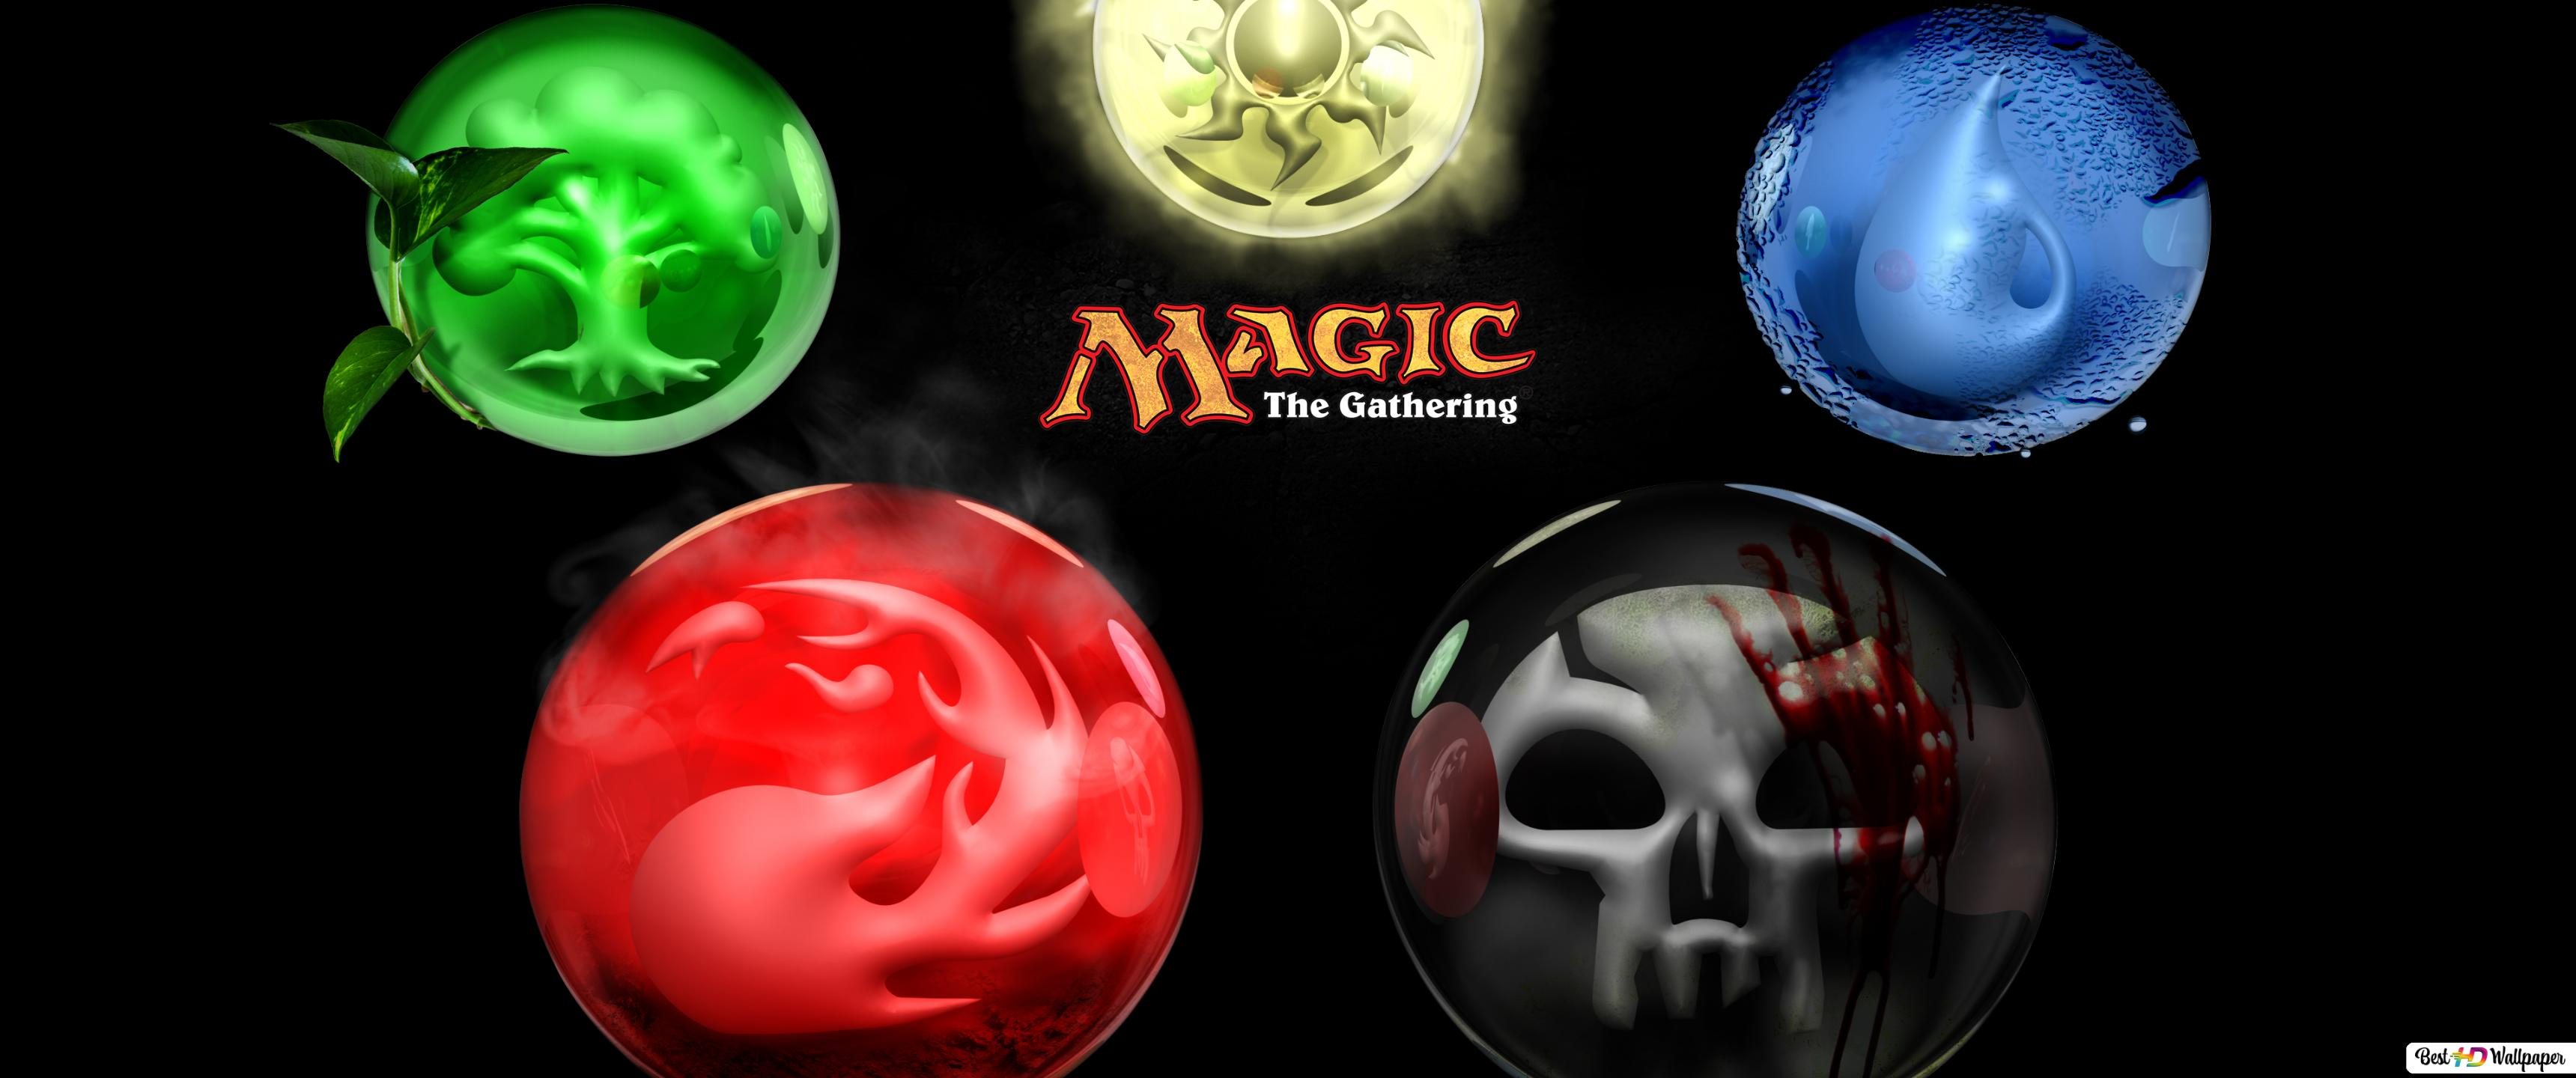 Magic The Gathering Hd Wallpaper Download